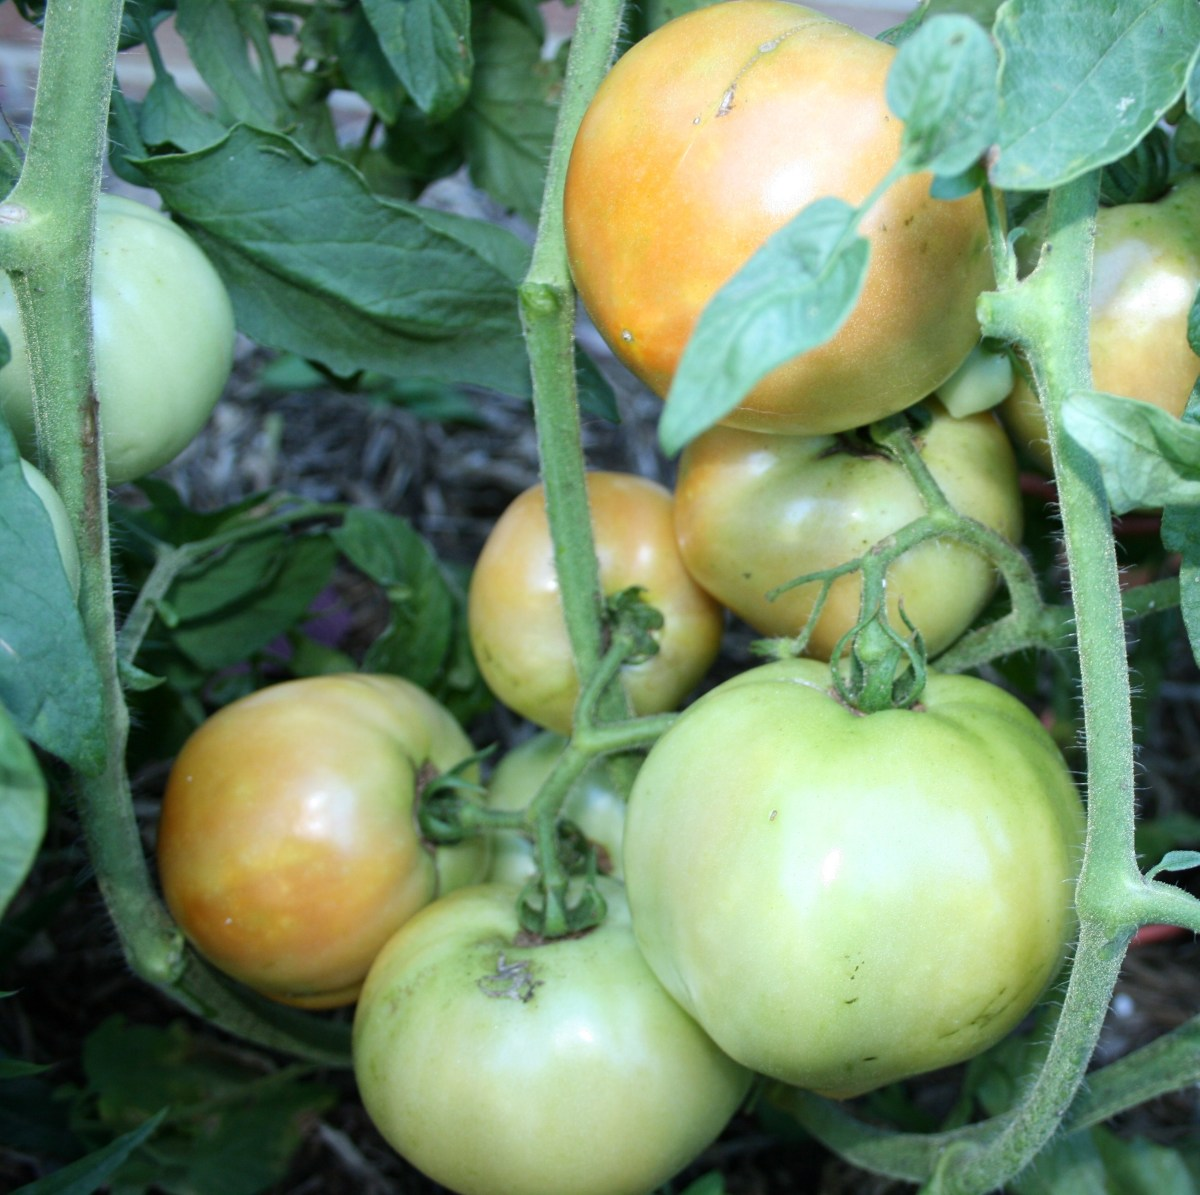 Mulching, Staking, and Pinching Your Way to Better Tomato Plants